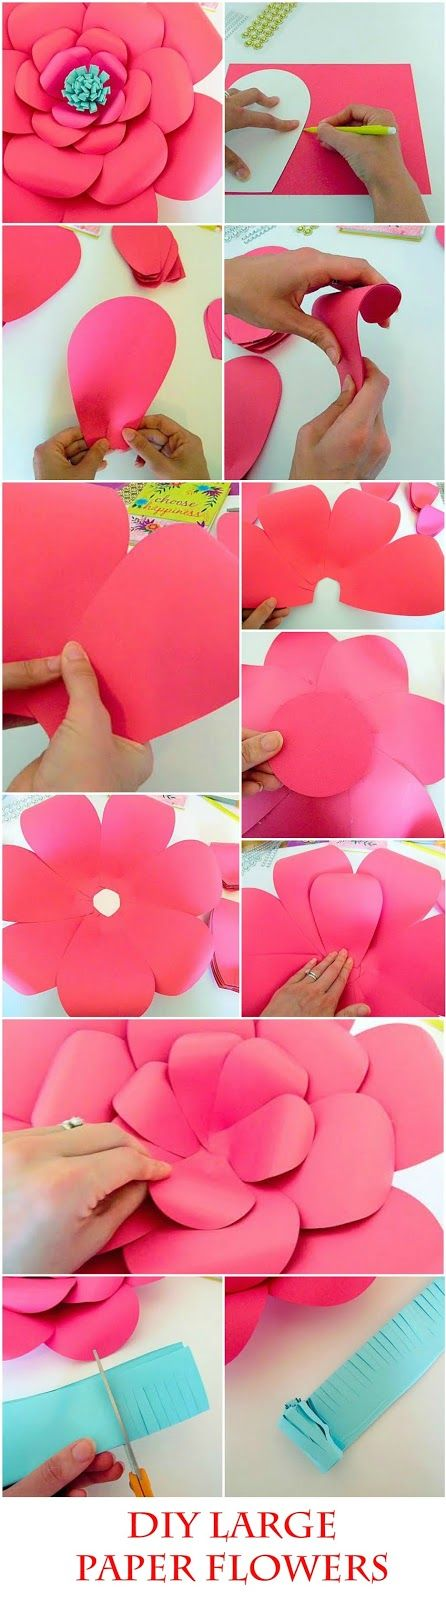 Image of pink DIY paper flowers for a baby shower